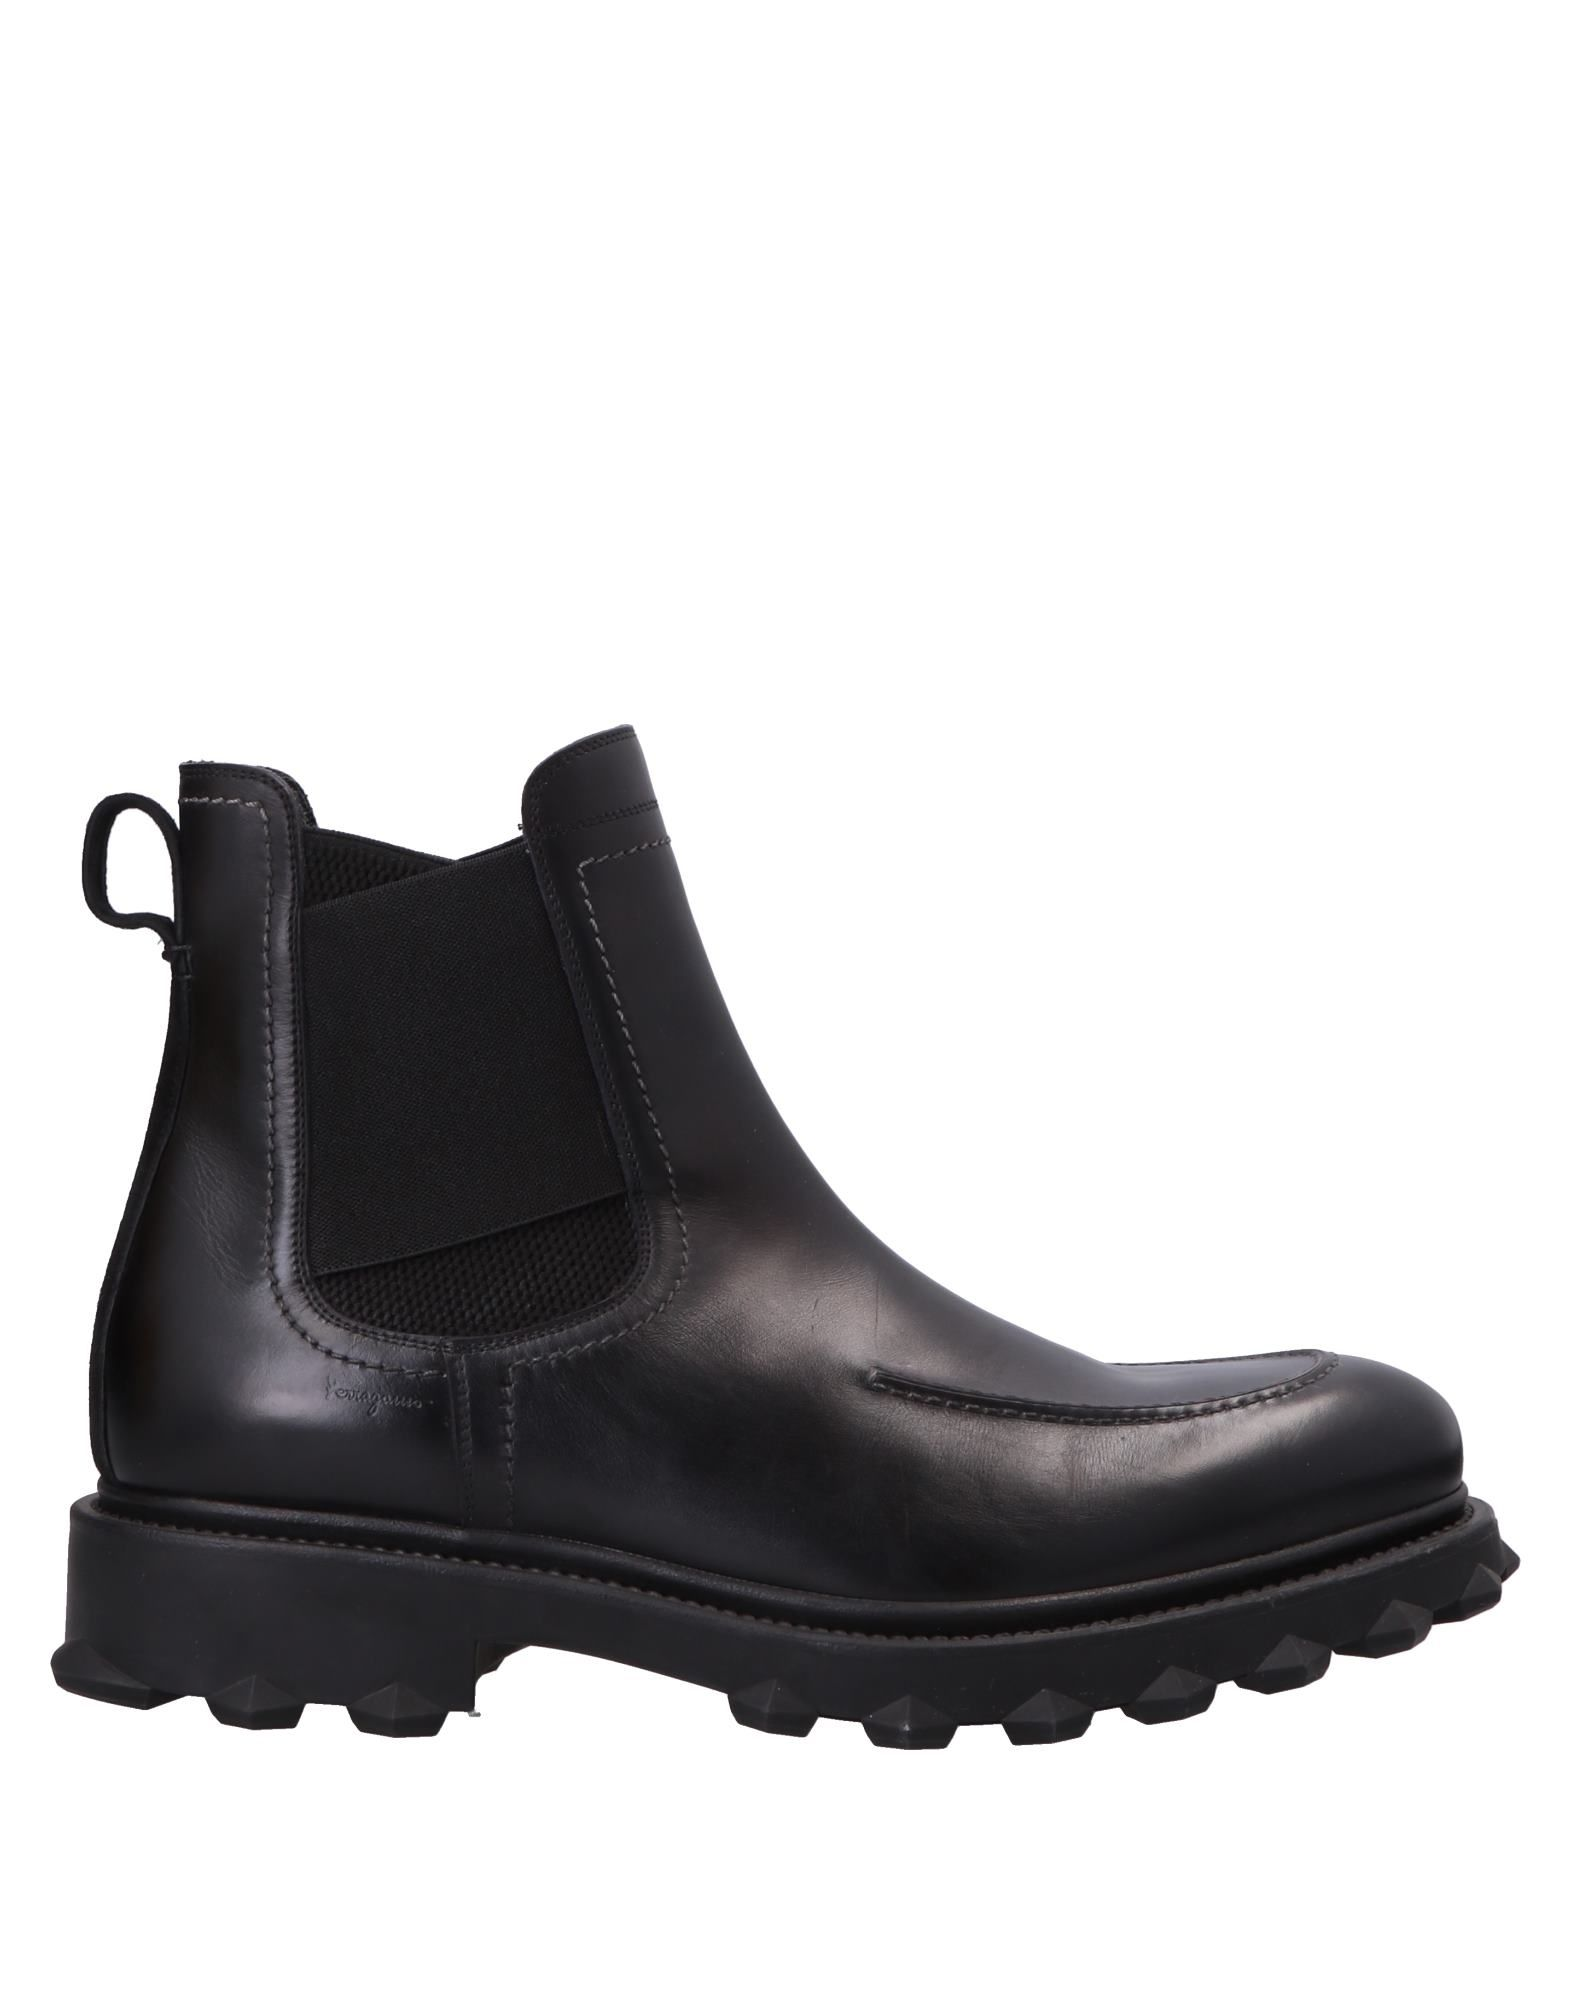 Bottine Salvatore Ferragamo Homme - Bottines Salvatore Ferragamo   - 11556189GV